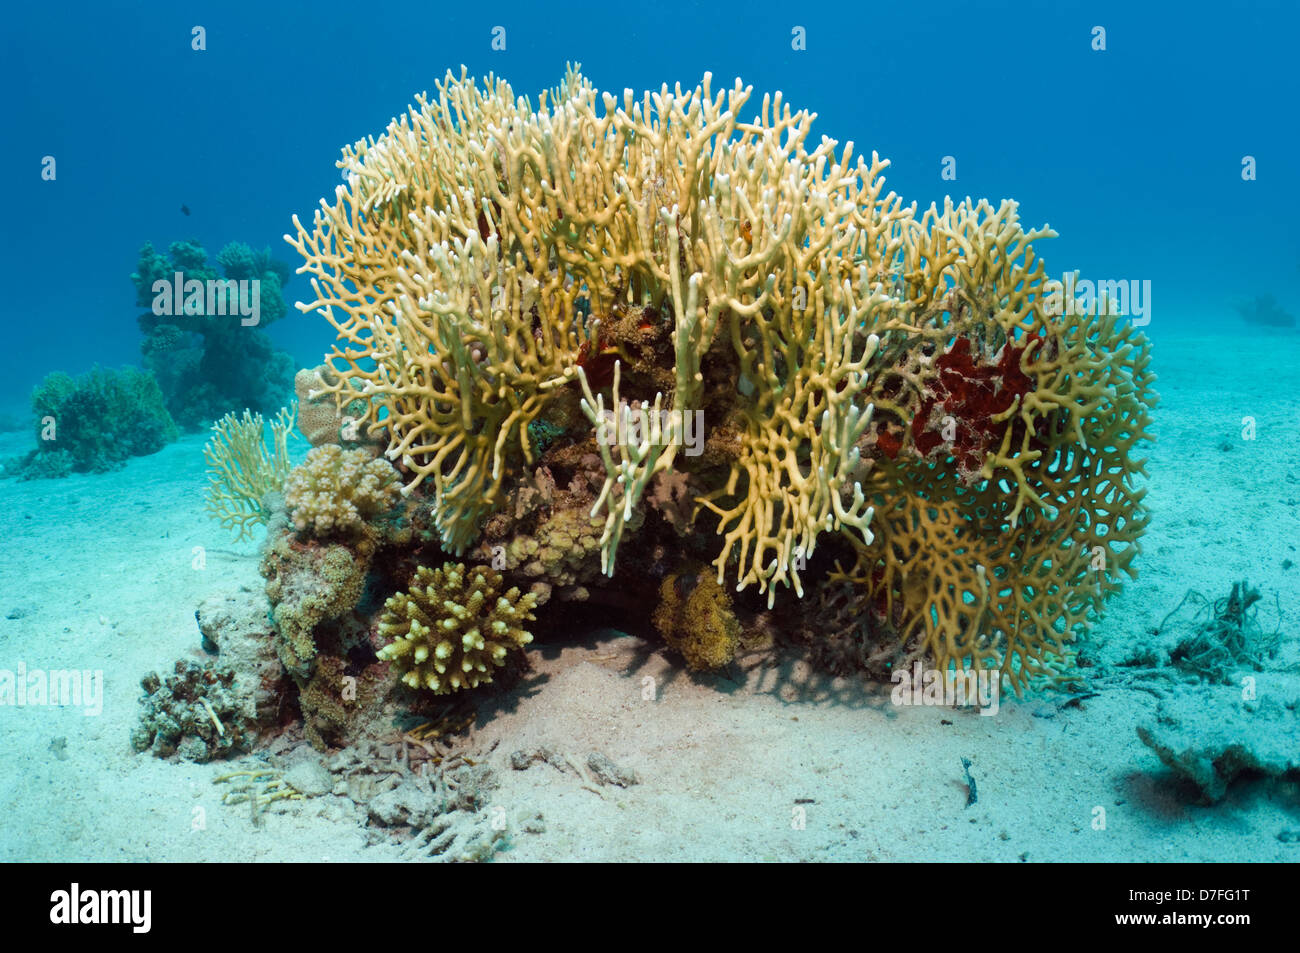 Fire coral (Millepora dichotoma). Egypt, Red Sea. - Stock Image